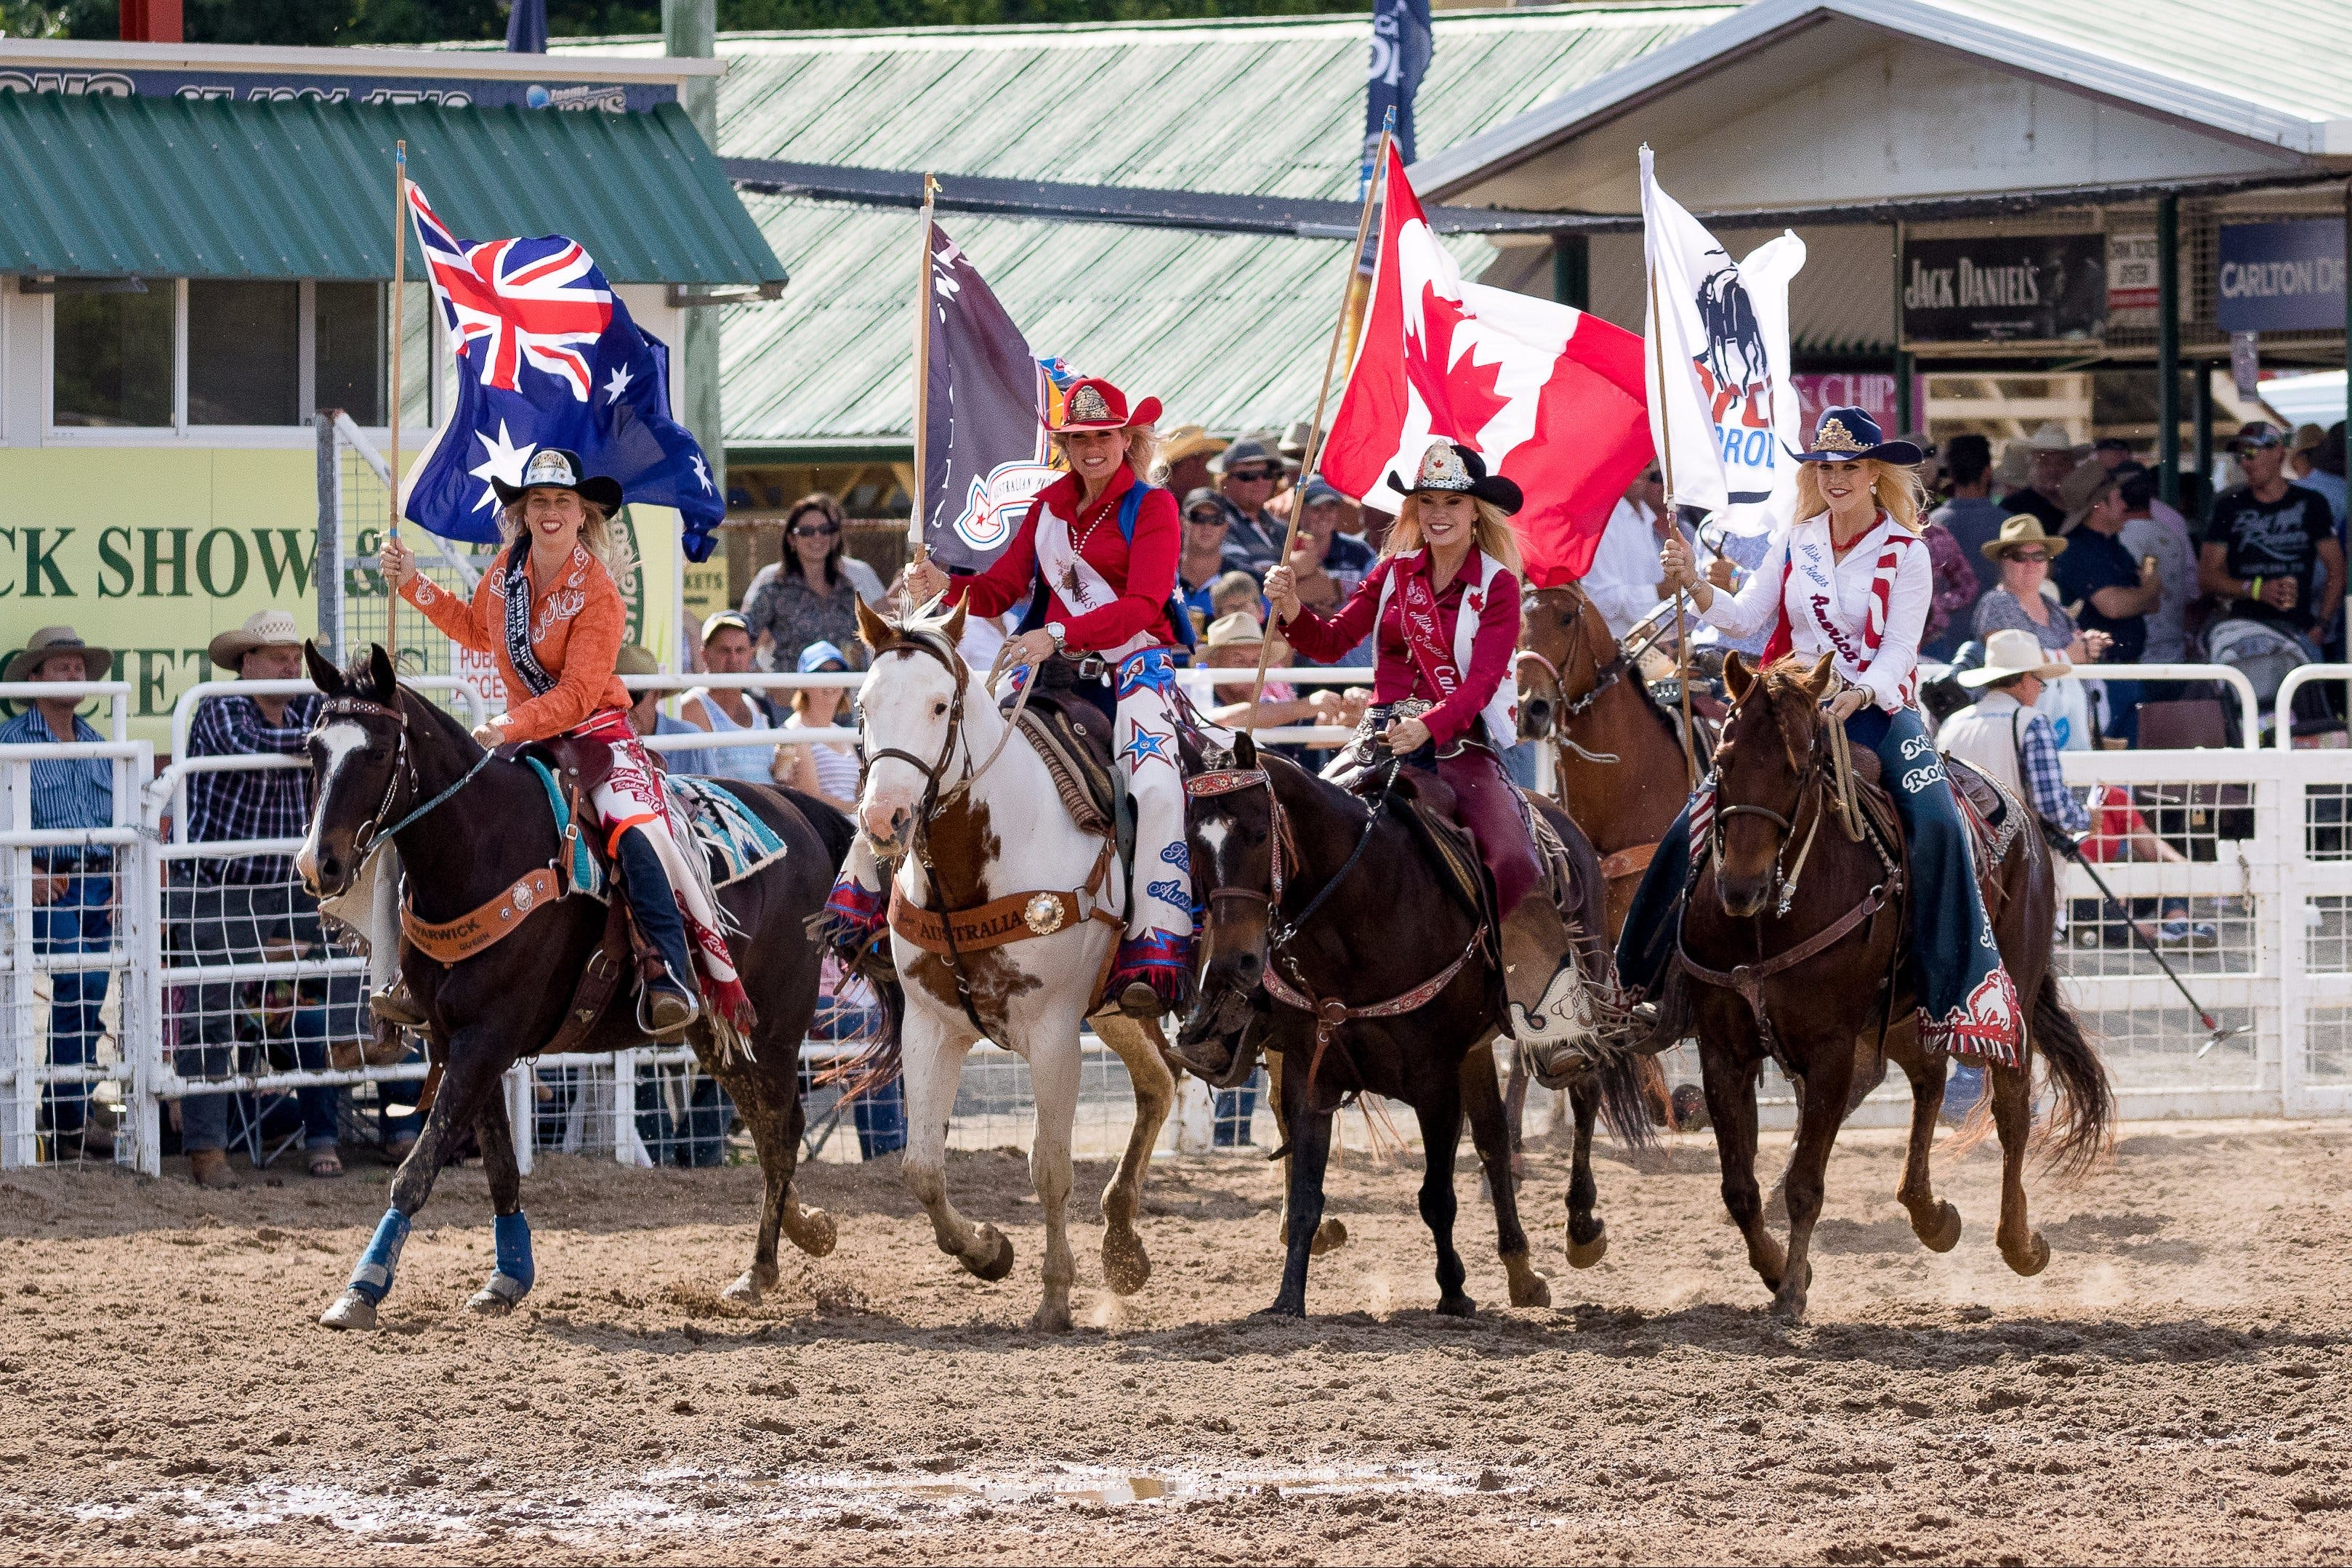 Warwick Rodeo National APRA National Finals and Warwick Gold Cup Campdraft - New South Wales Tourism